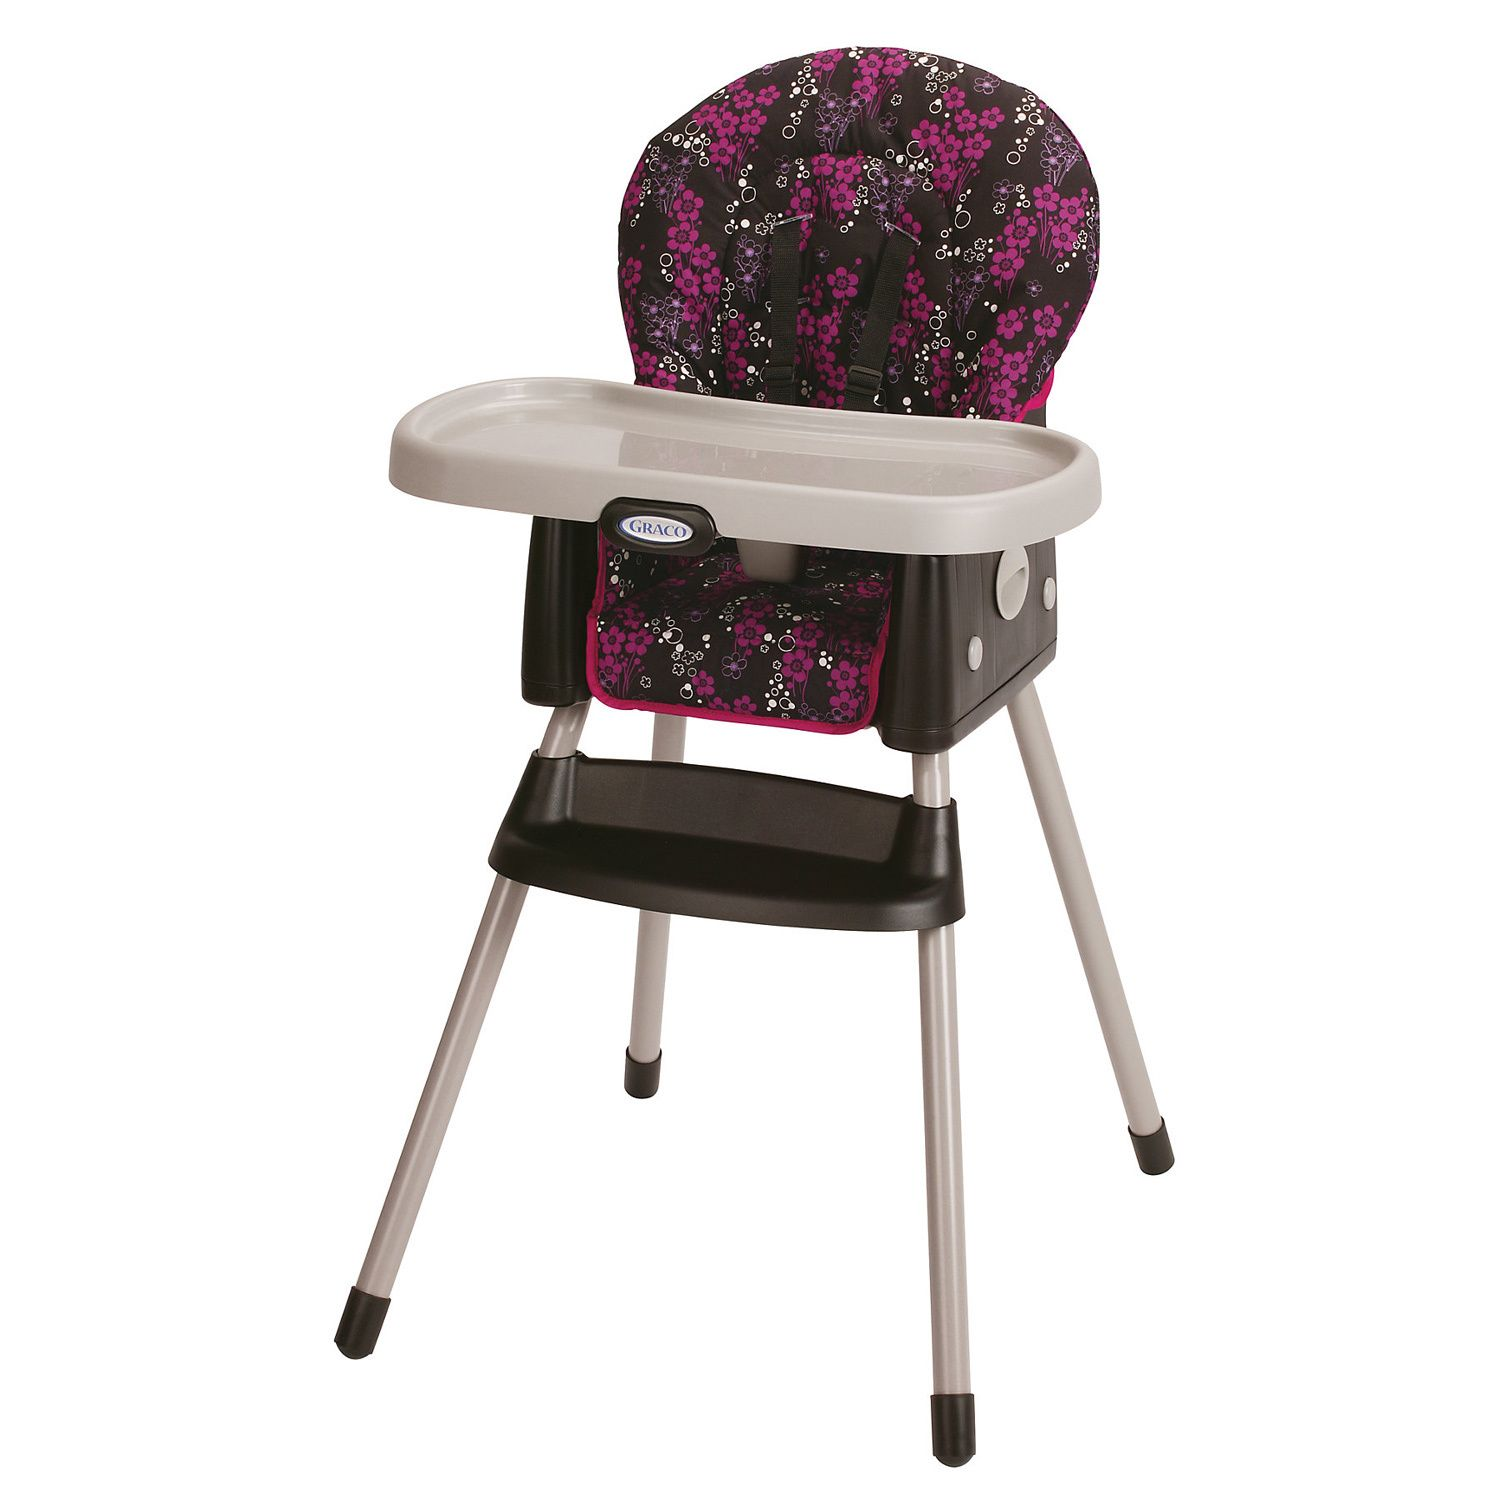 furniture babies home your throughout tray on chair antilop com markfcooper ikea chairs for with high remodel baby